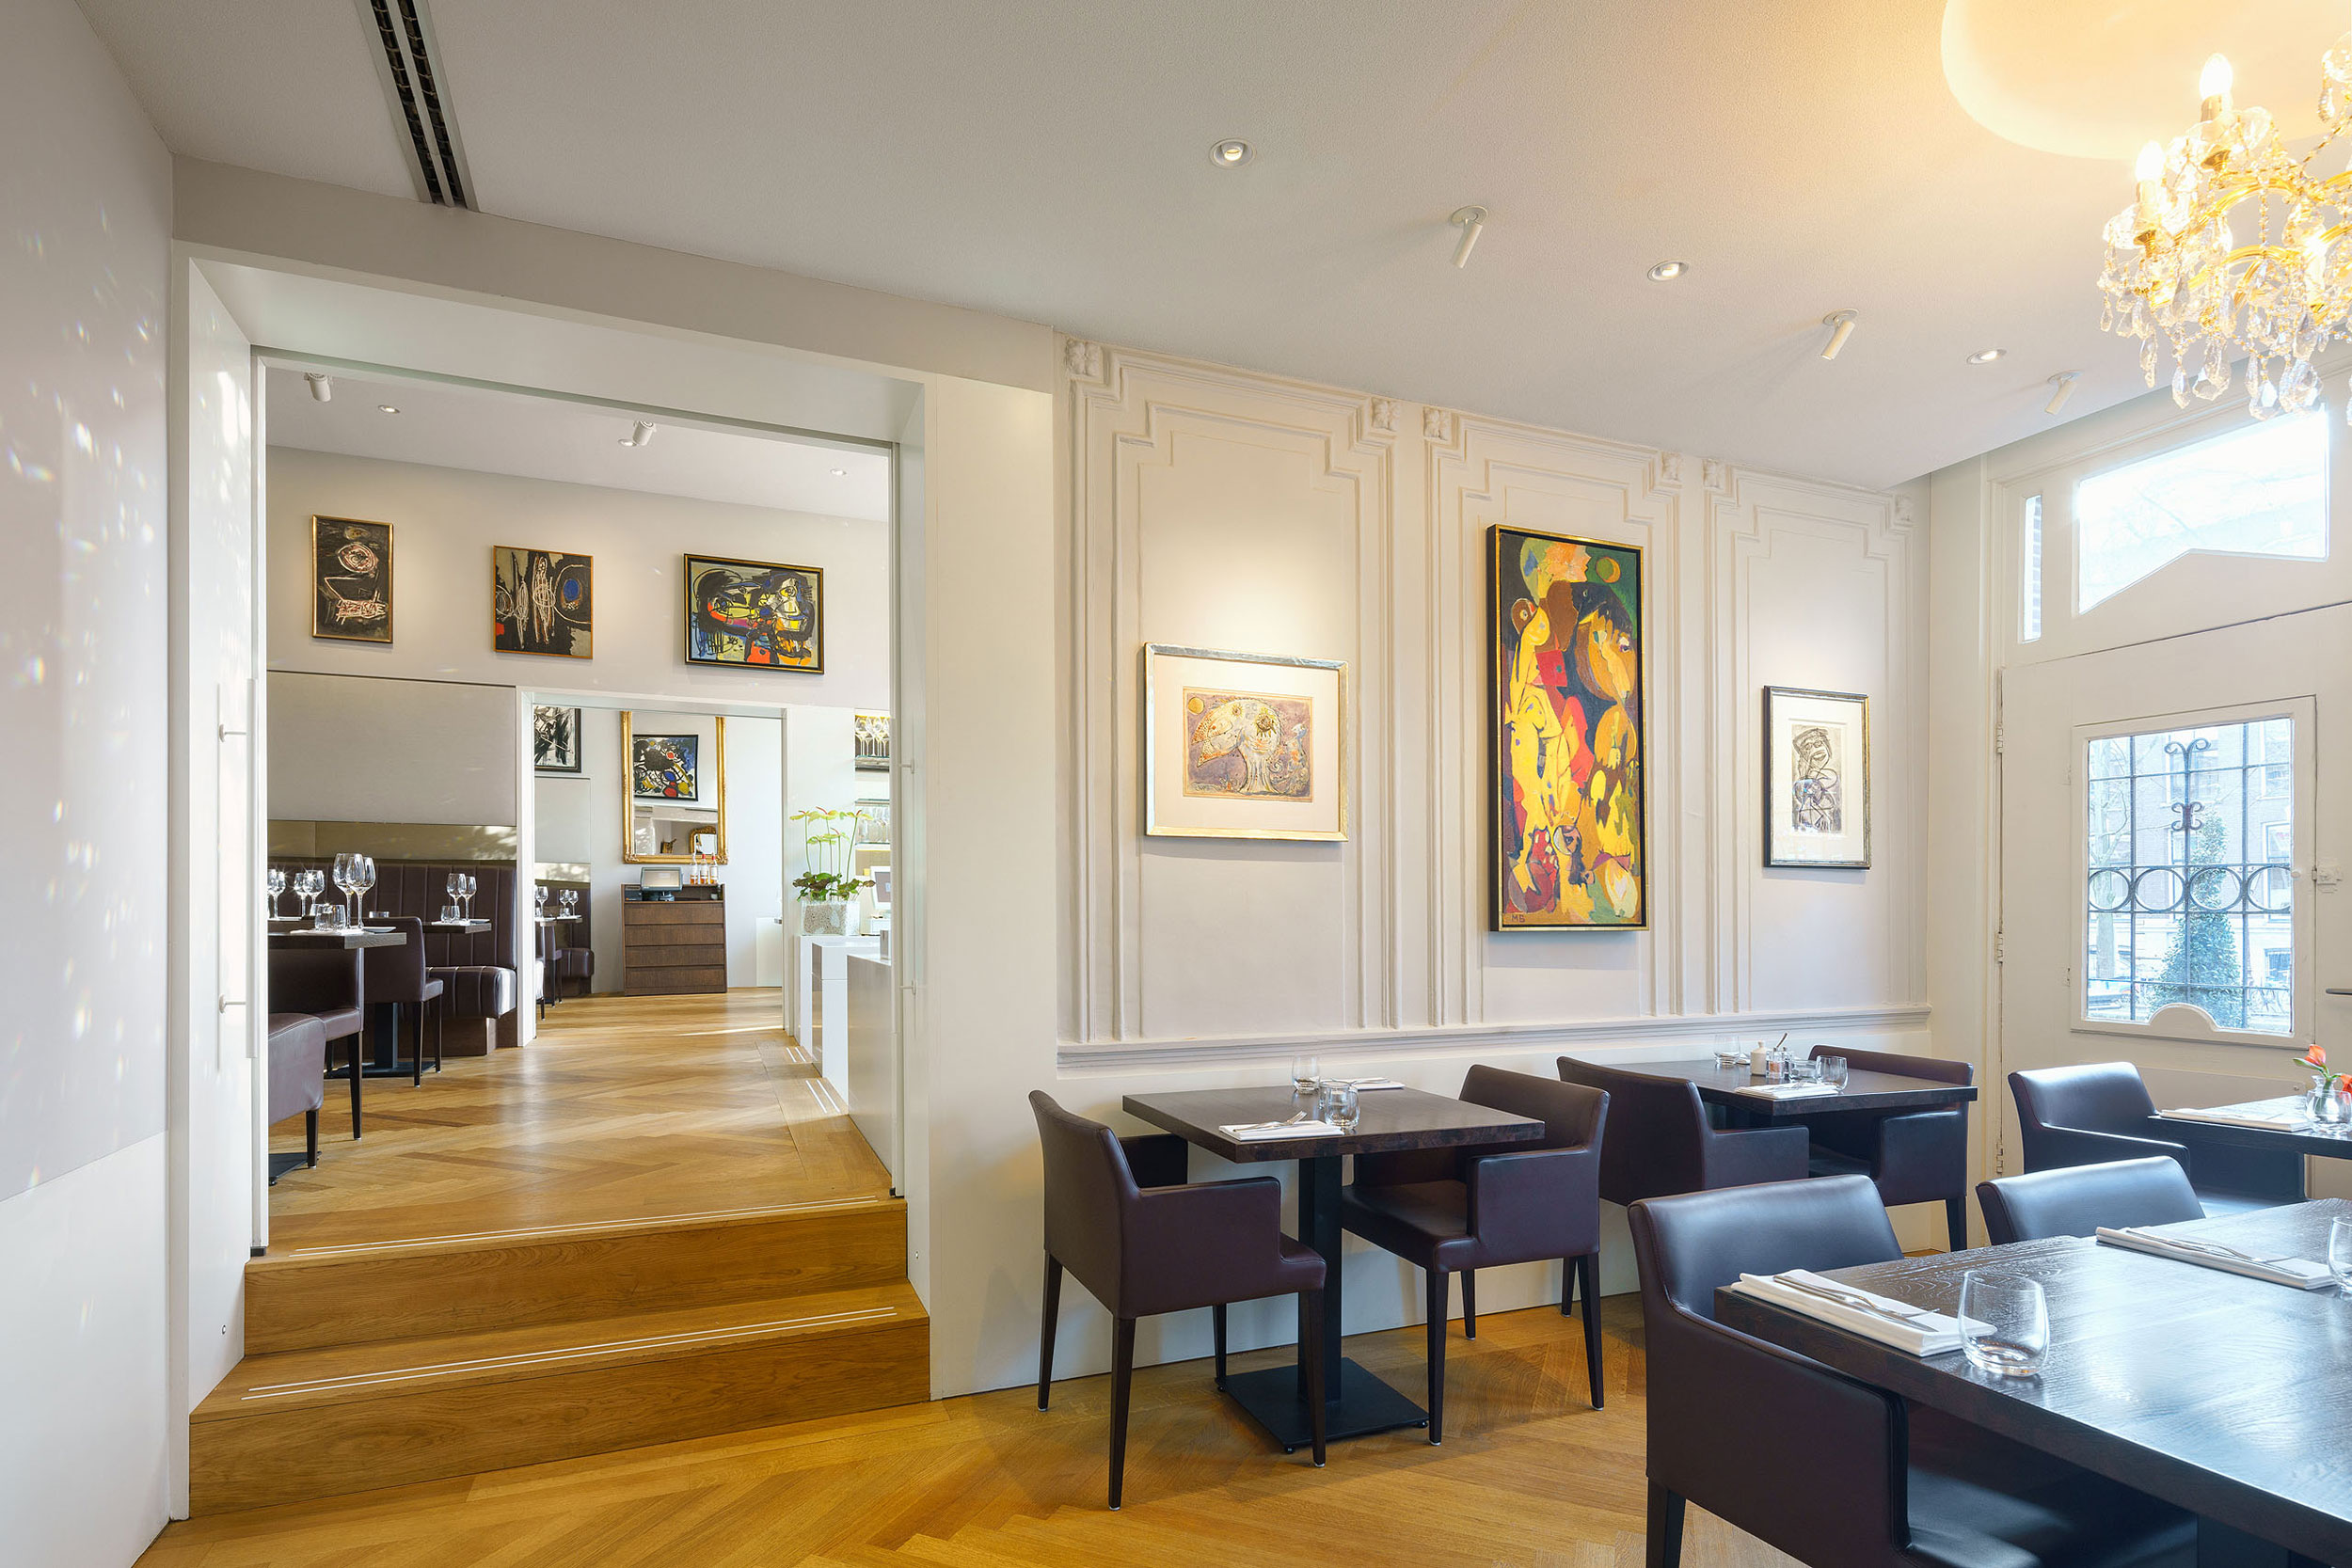 Brasserie Ambassade as seen from the Private Dining, with paintings by cobra artists adorning the walls and a view on Herengracht